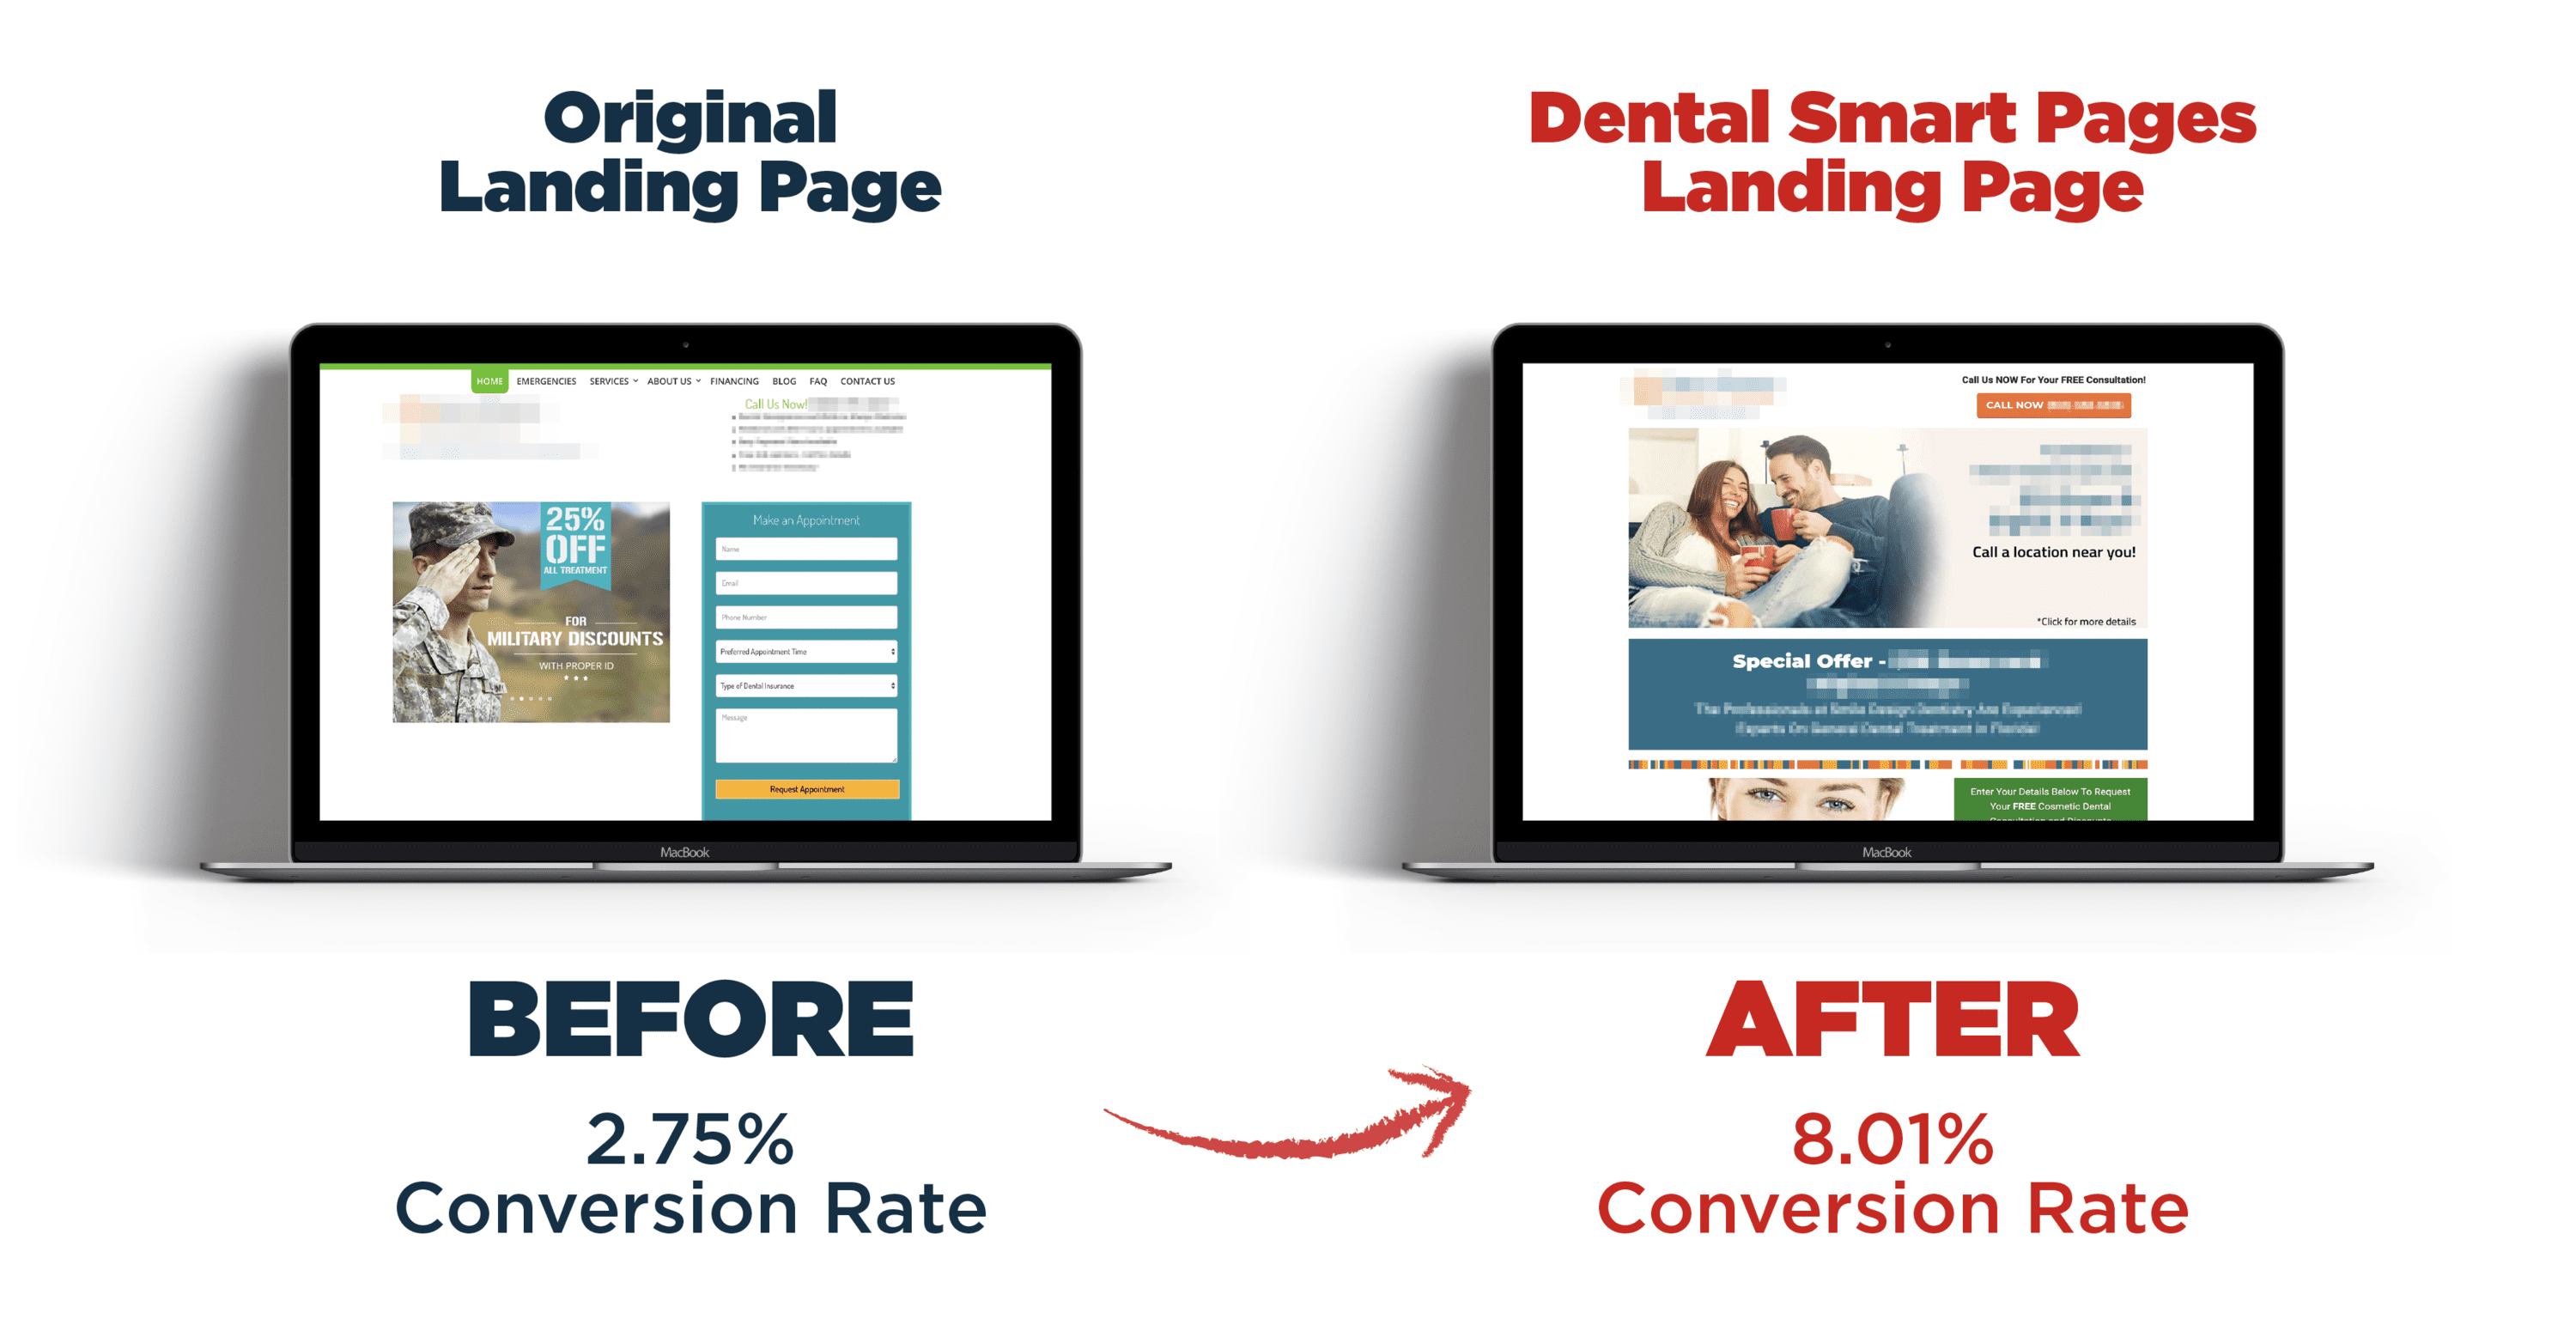 Smart Dental Landing Pages